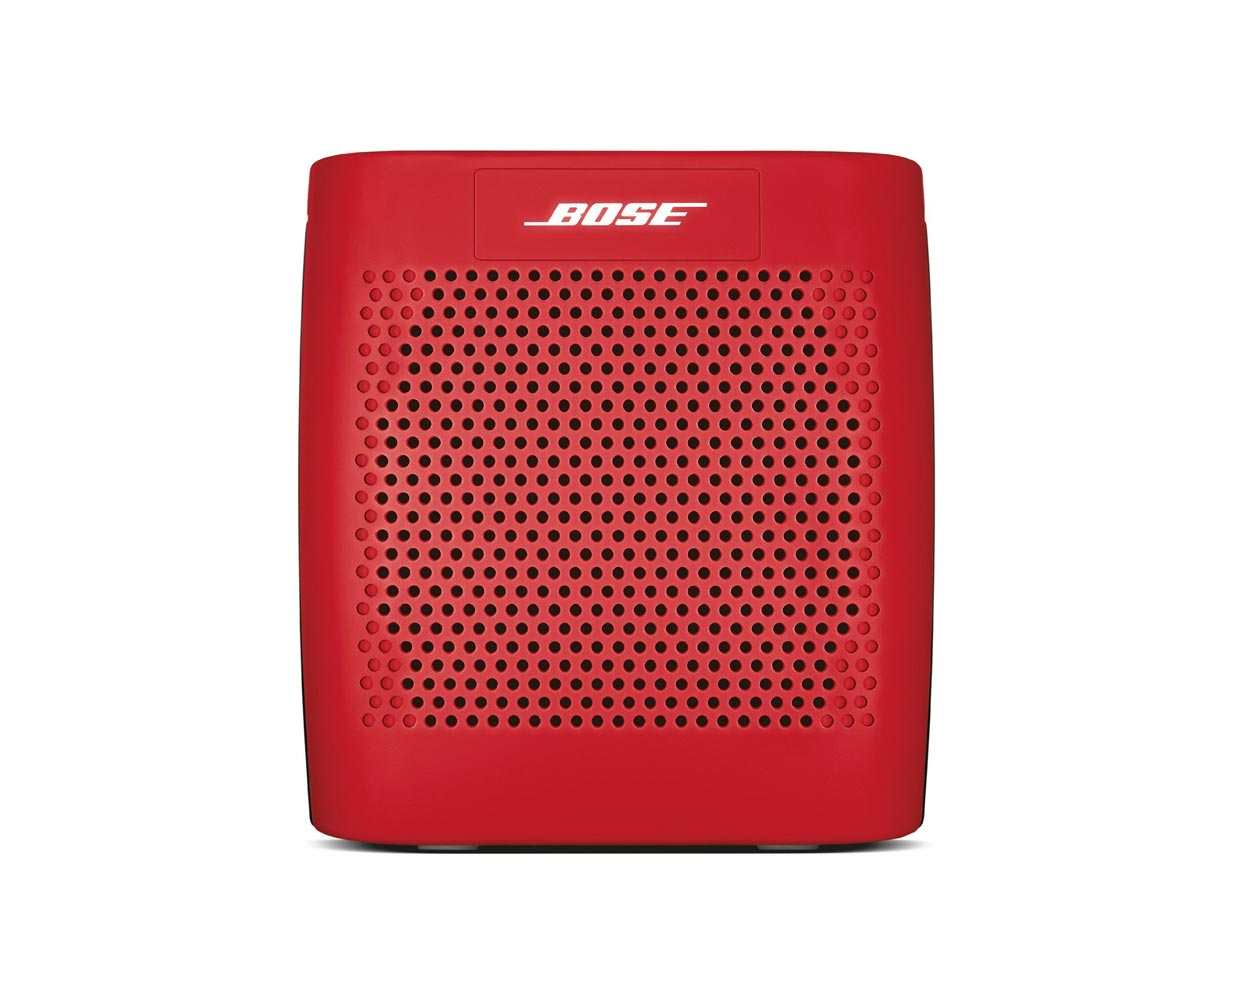 Спикеры: Bose SoundLink Colour Red, фотография №1